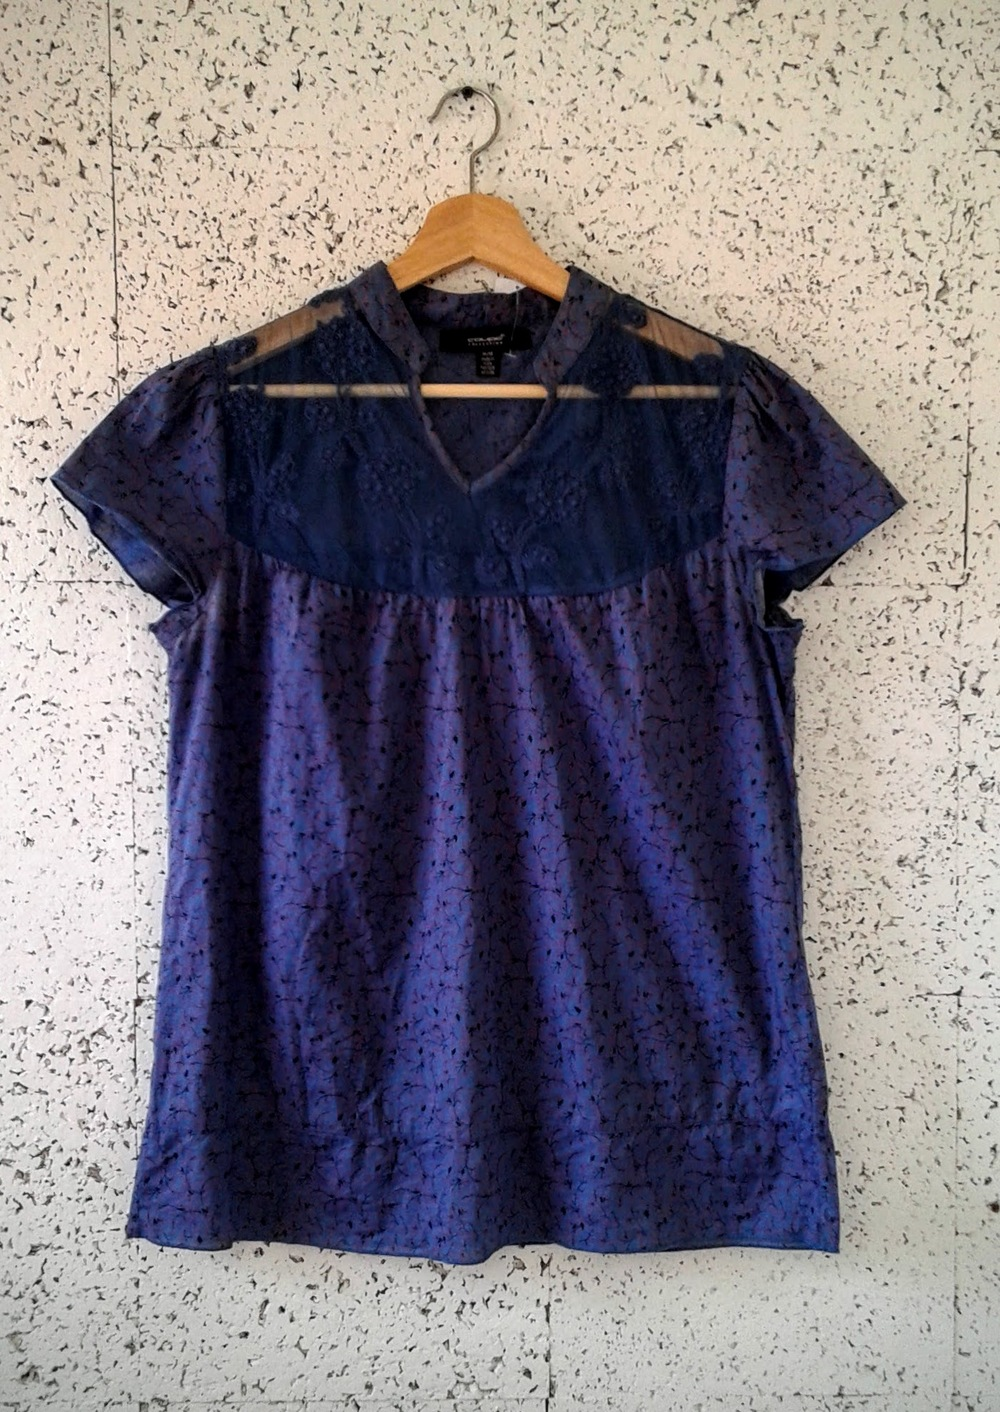 Coupe top; Size M, $18